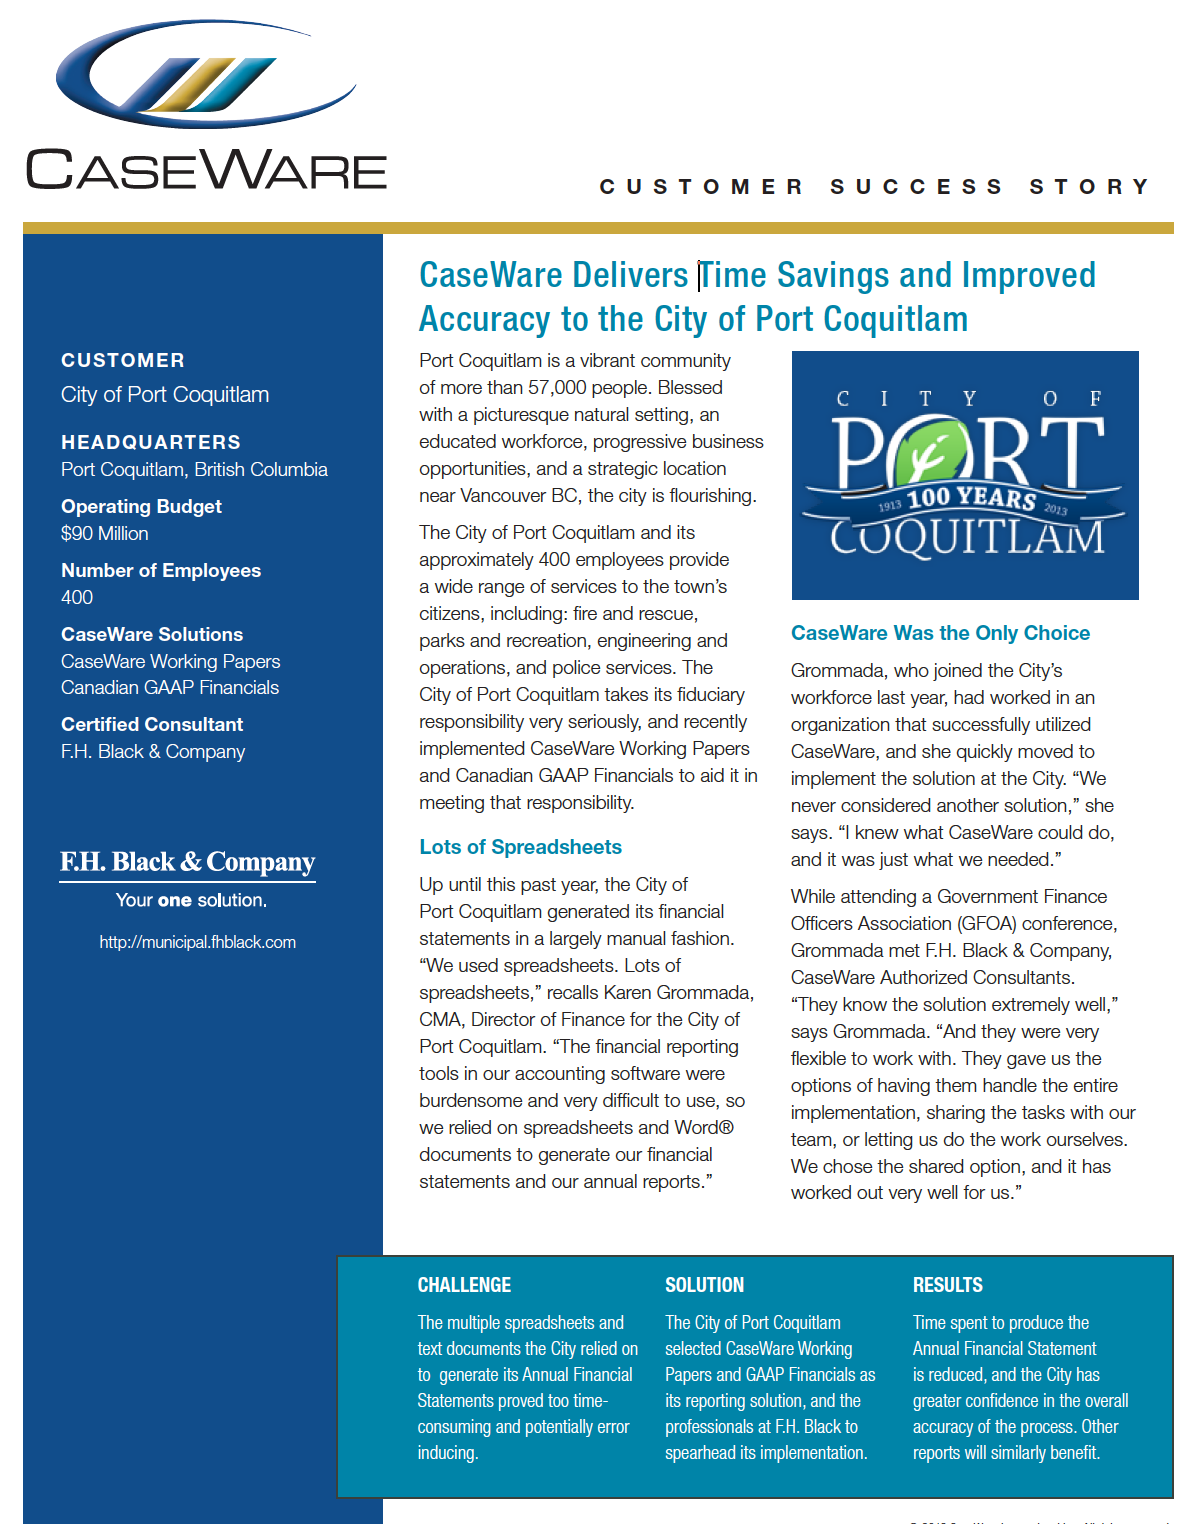 City of Port Coquitlam Success Story